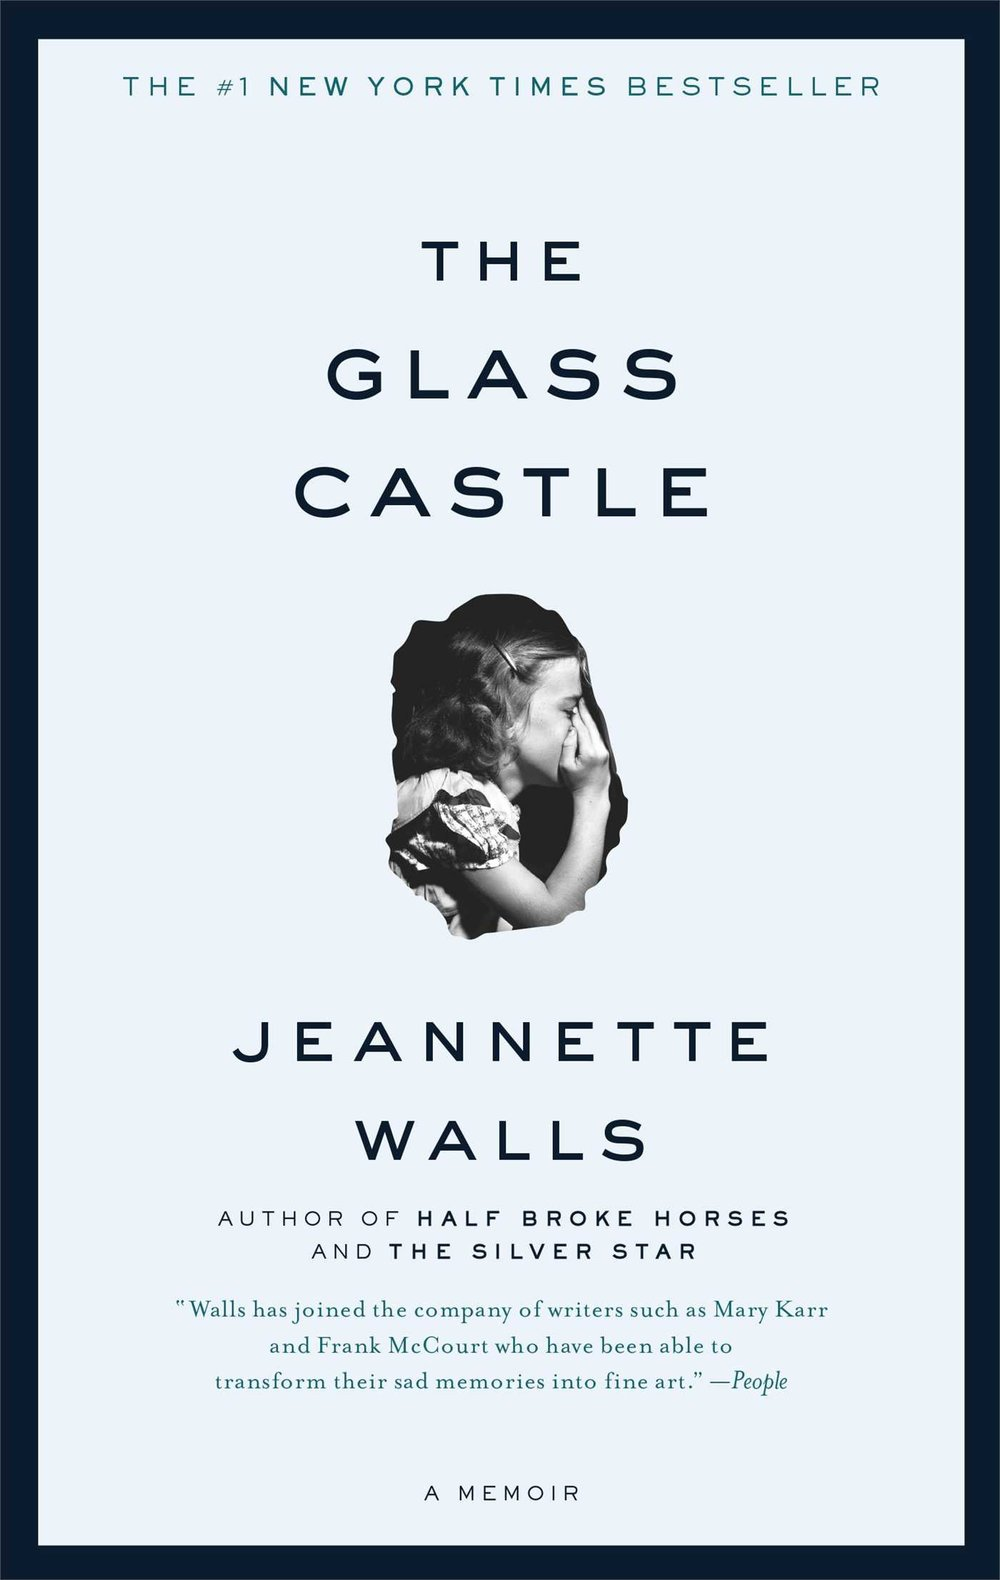 The Glass Castle - Jeannette Walls - This is a great autobiography that is authentic and honest. It shares the author's journey of resiliency and success.  It is both heartbreaking and inspiring.